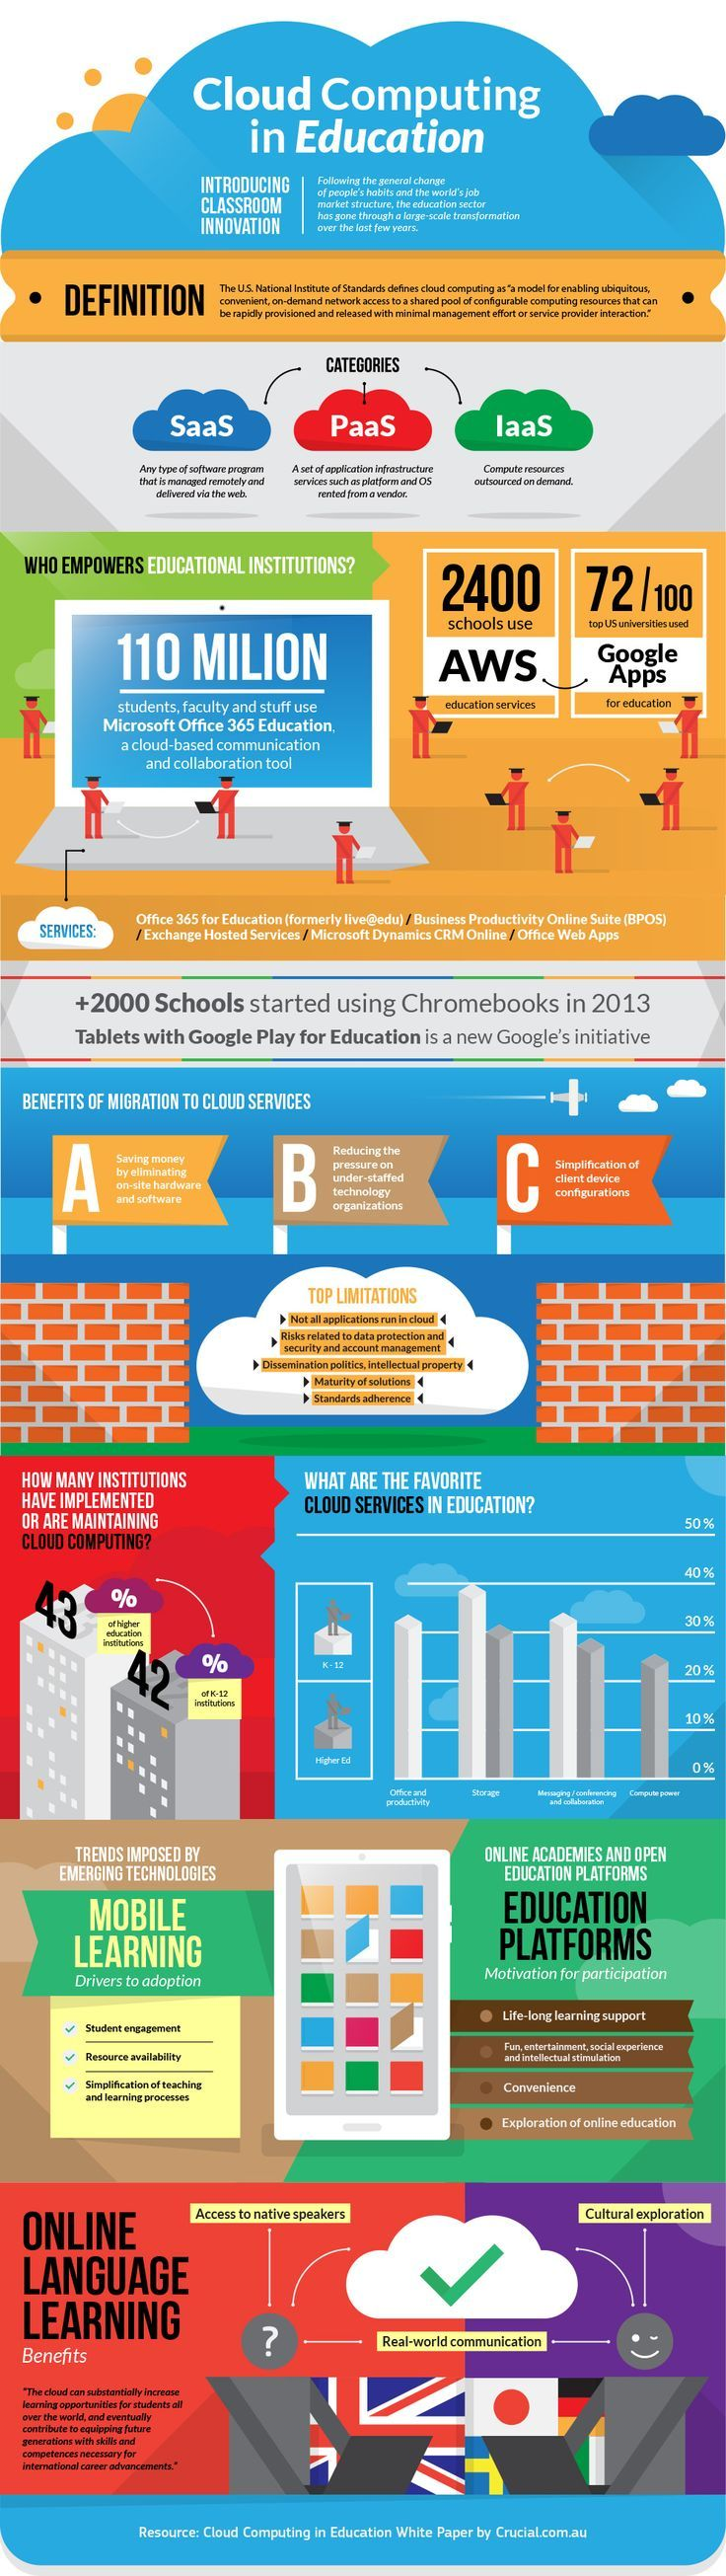 educational infographic cloud computing in education infographic